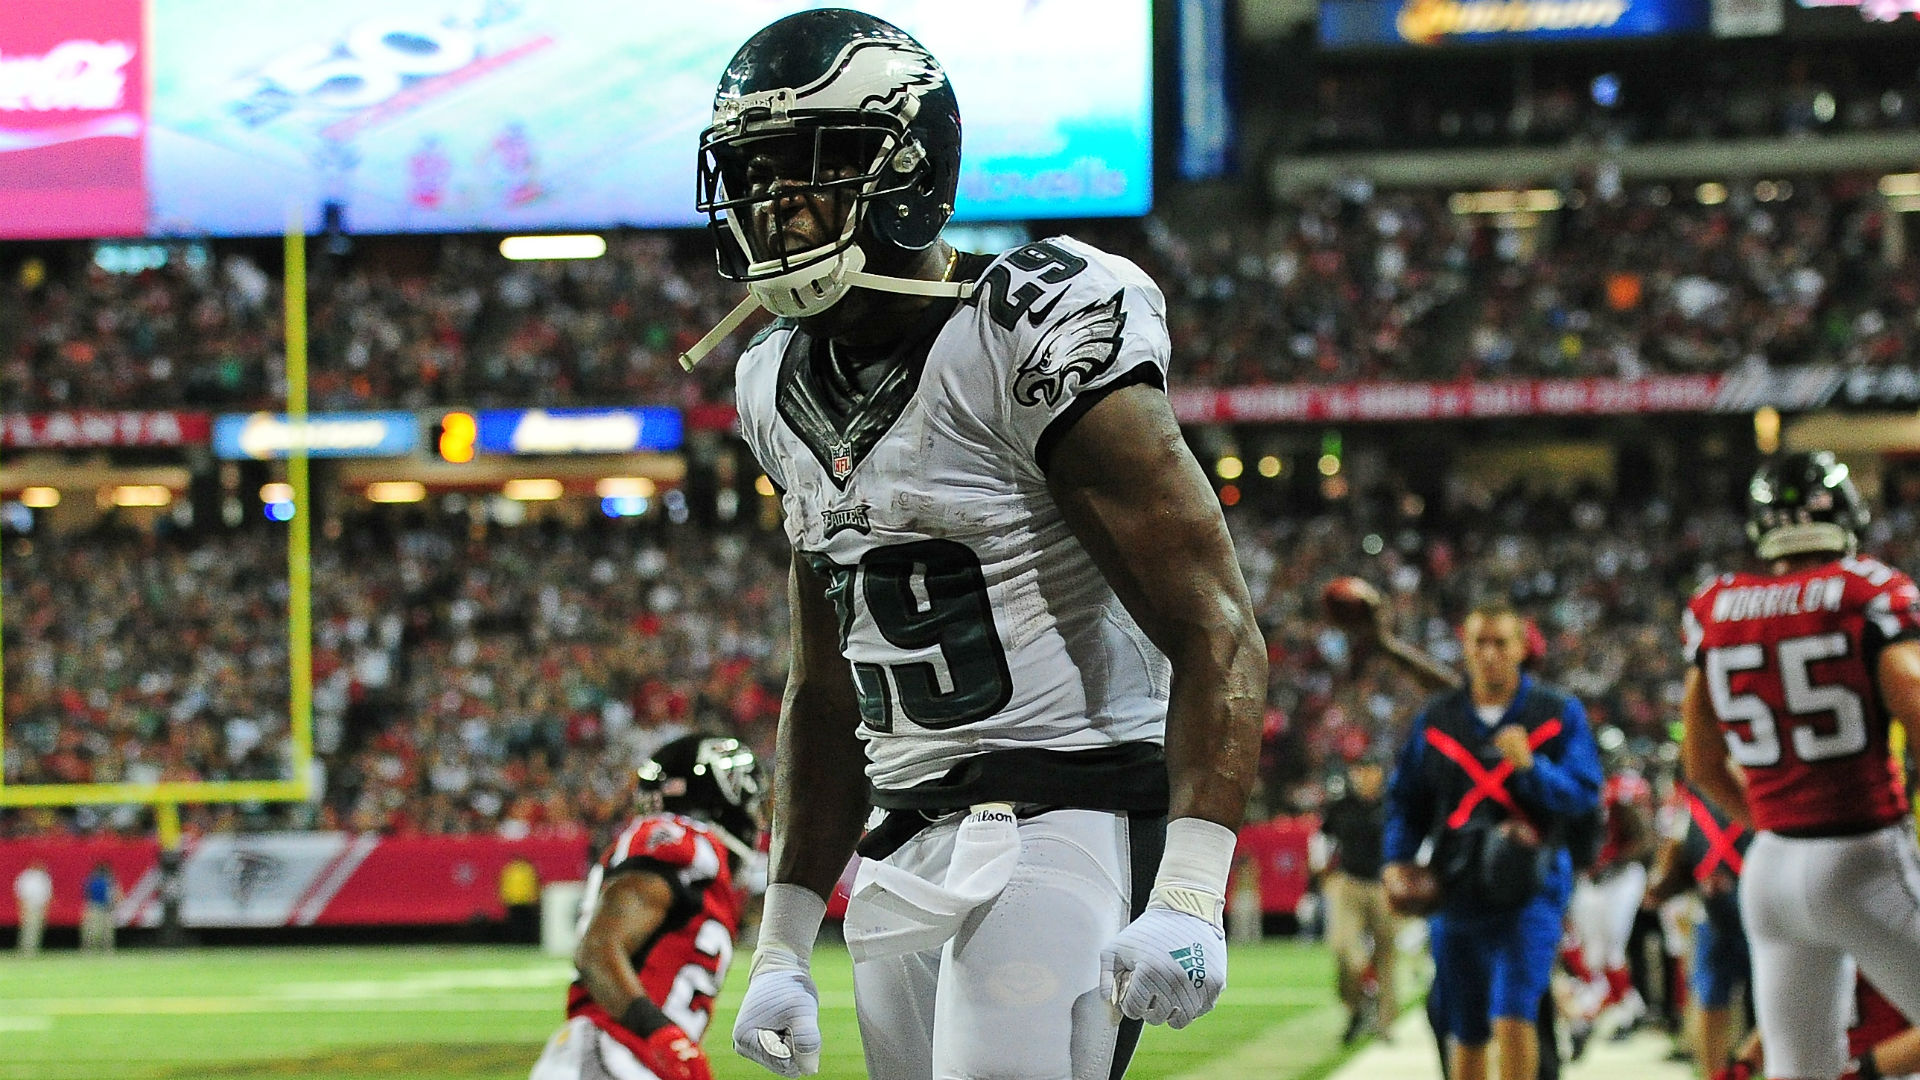 demarco-murray-12815-usnews-getty-FTR